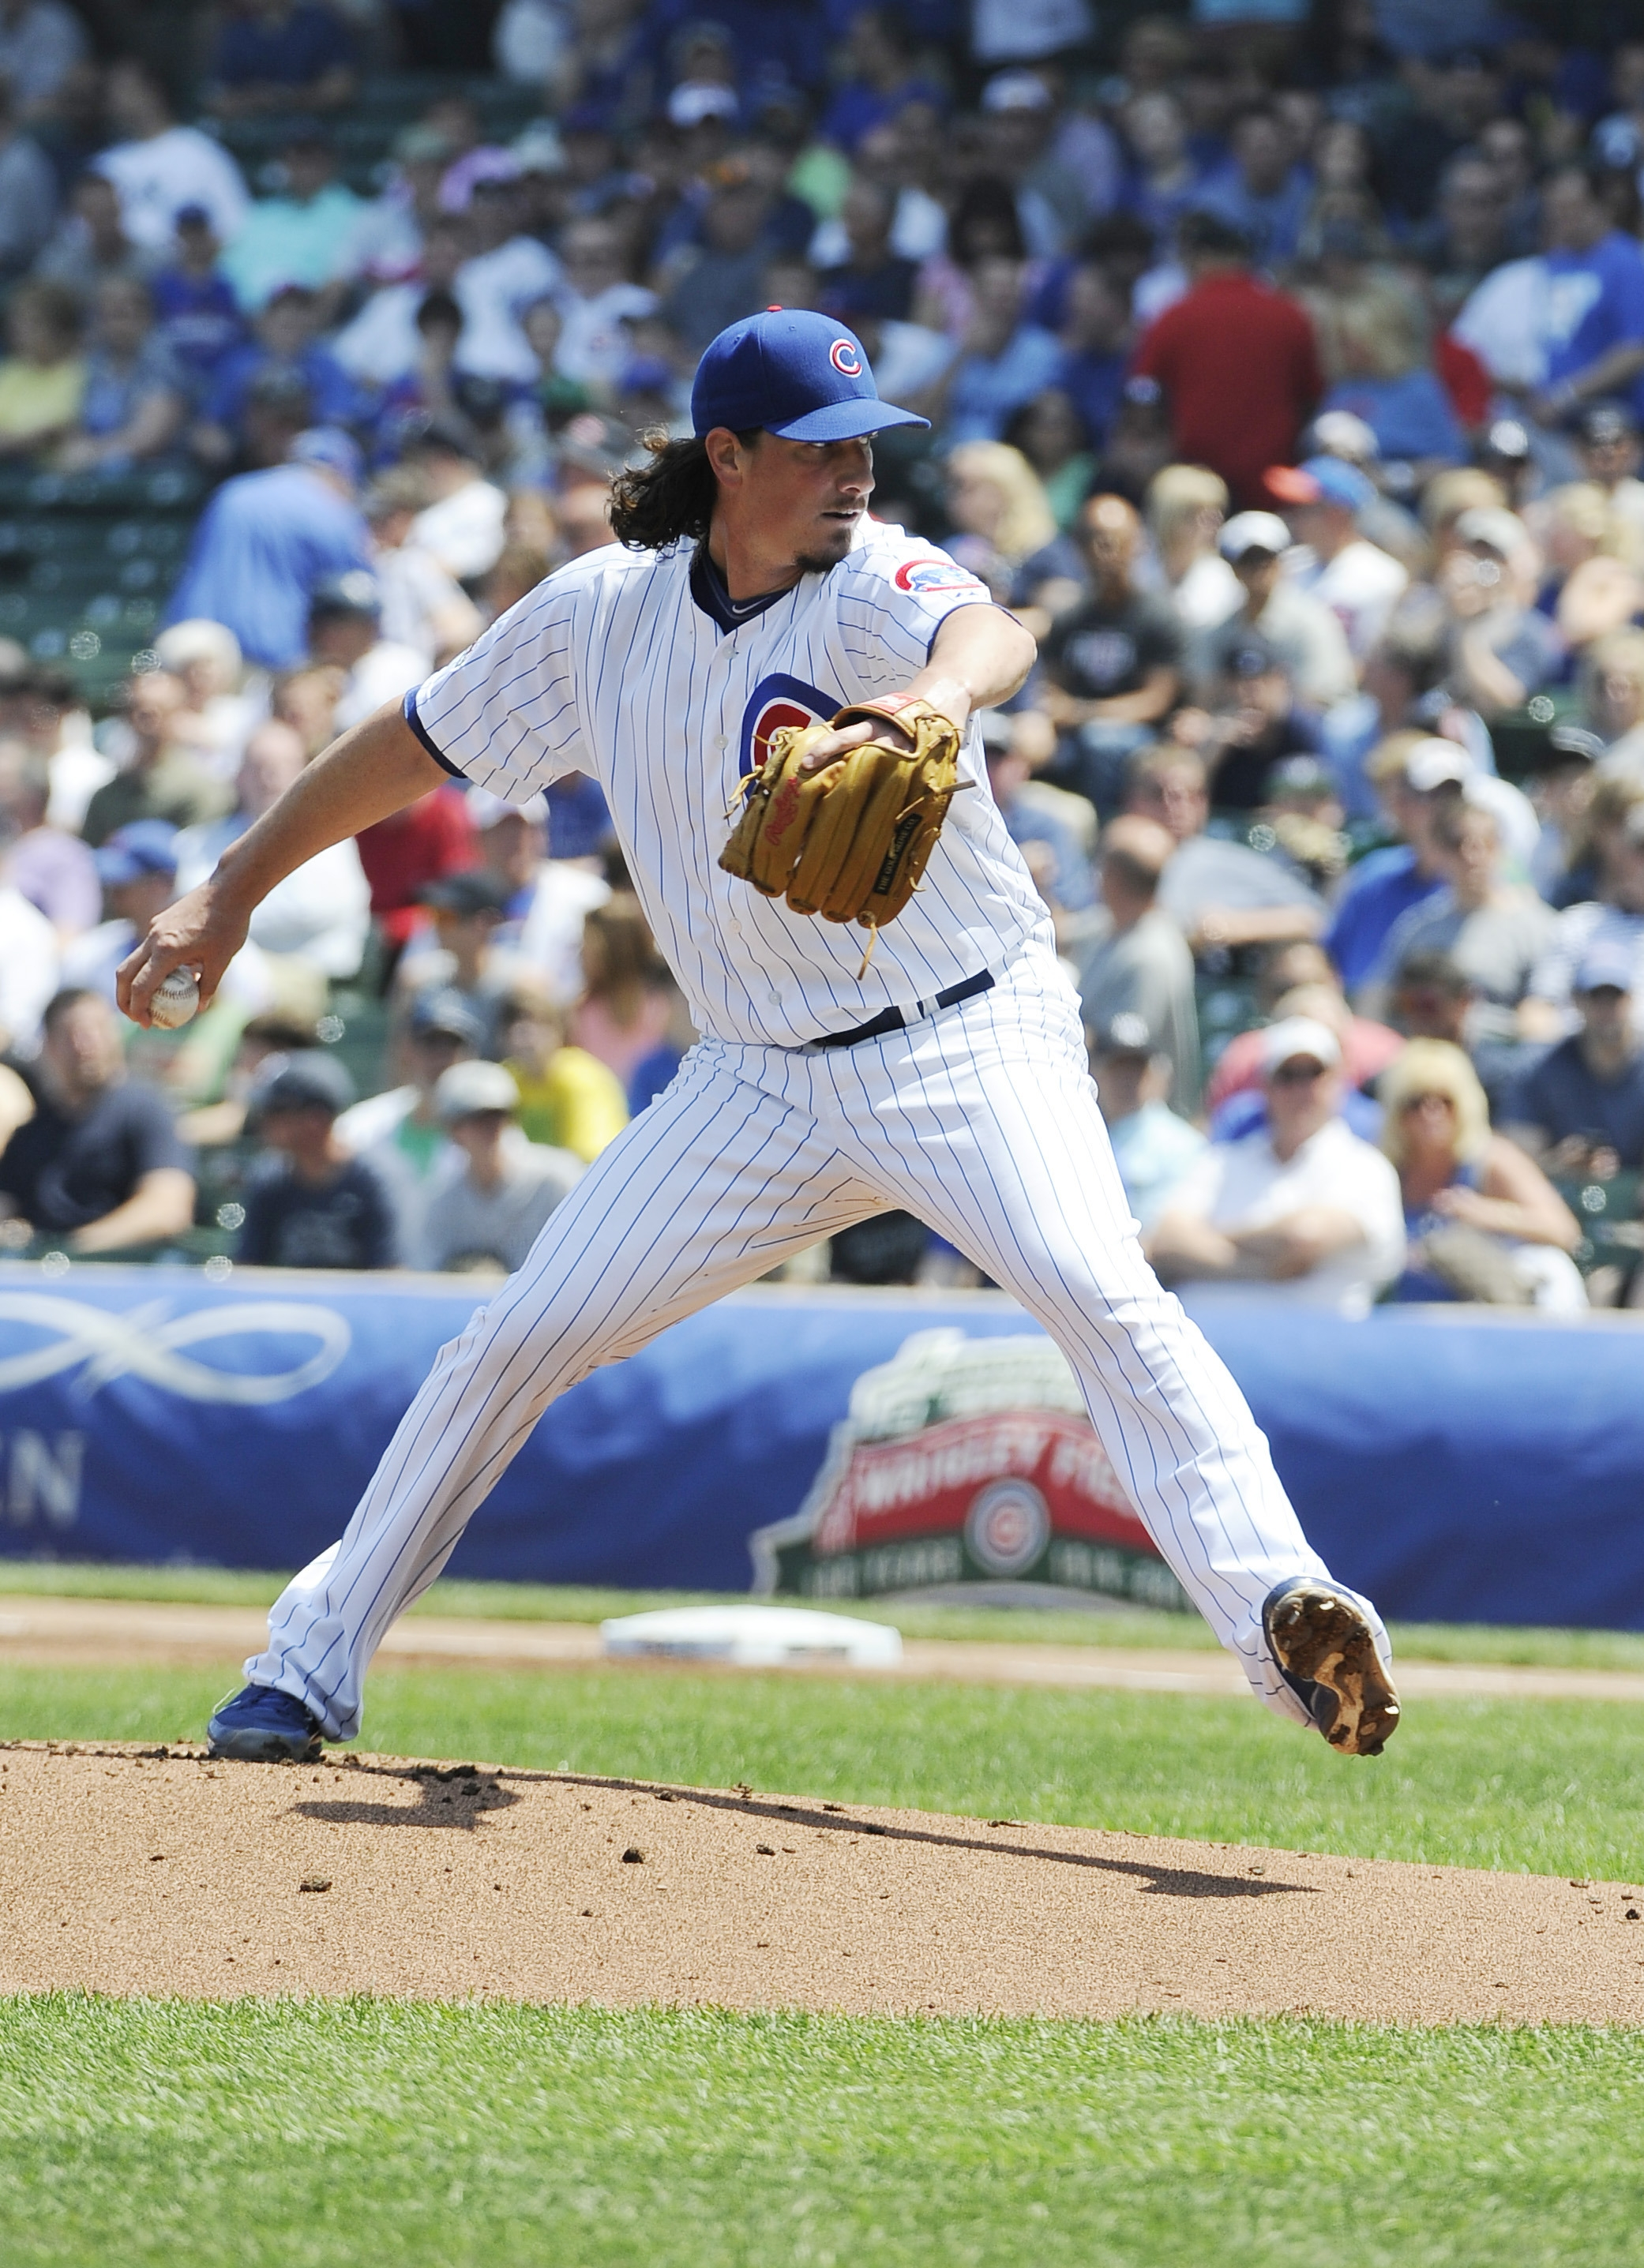 Jeff Samardzija has been one of the best pitchers in baseball this season, but has nothing to show for it.